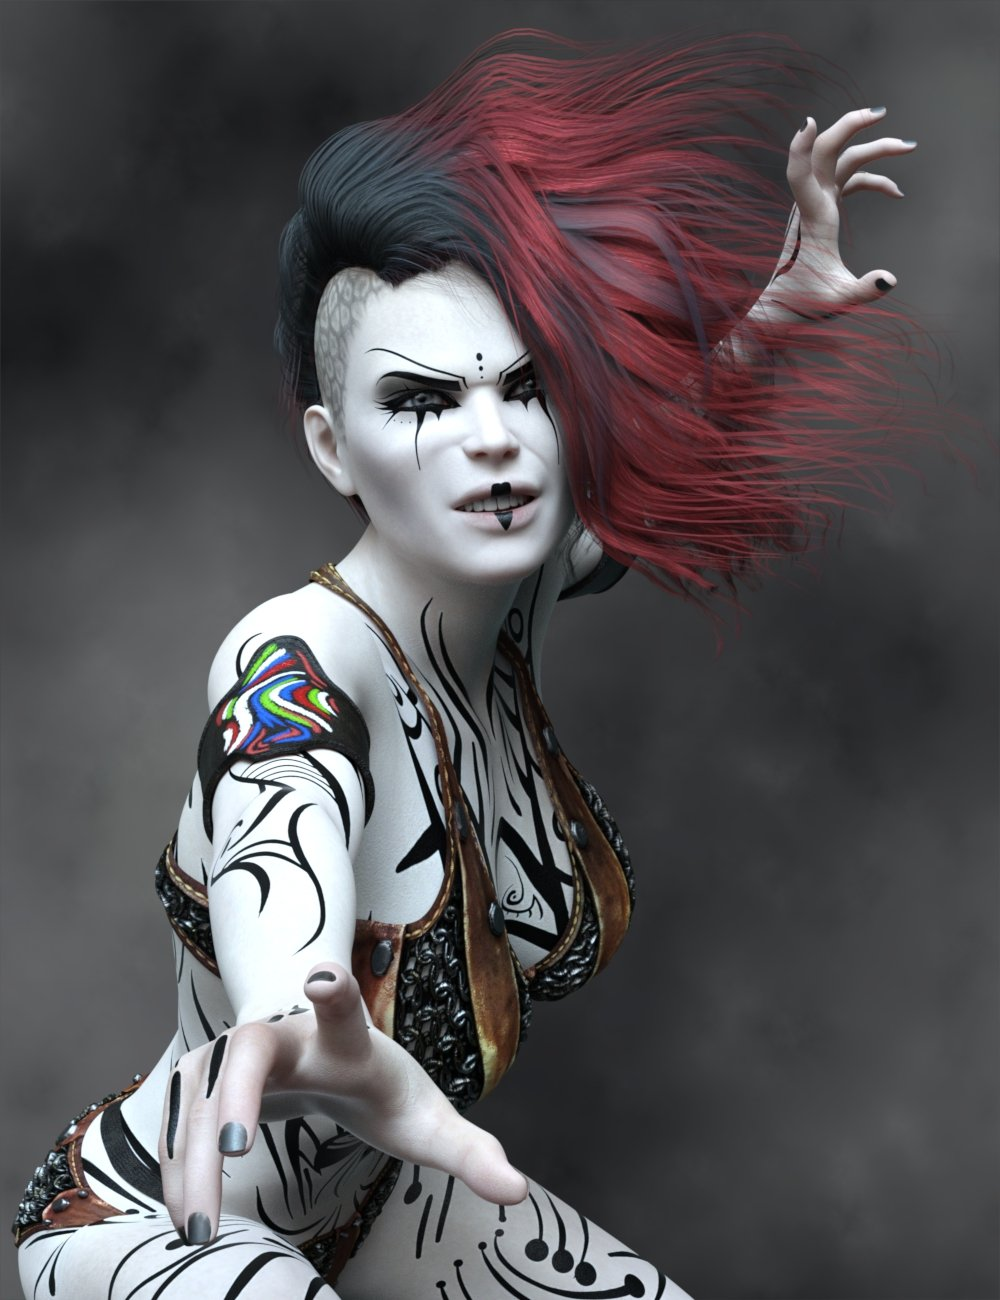 Mairin for Genesis 8 Female by: Dax Avalange, 3D Models by Daz 3D